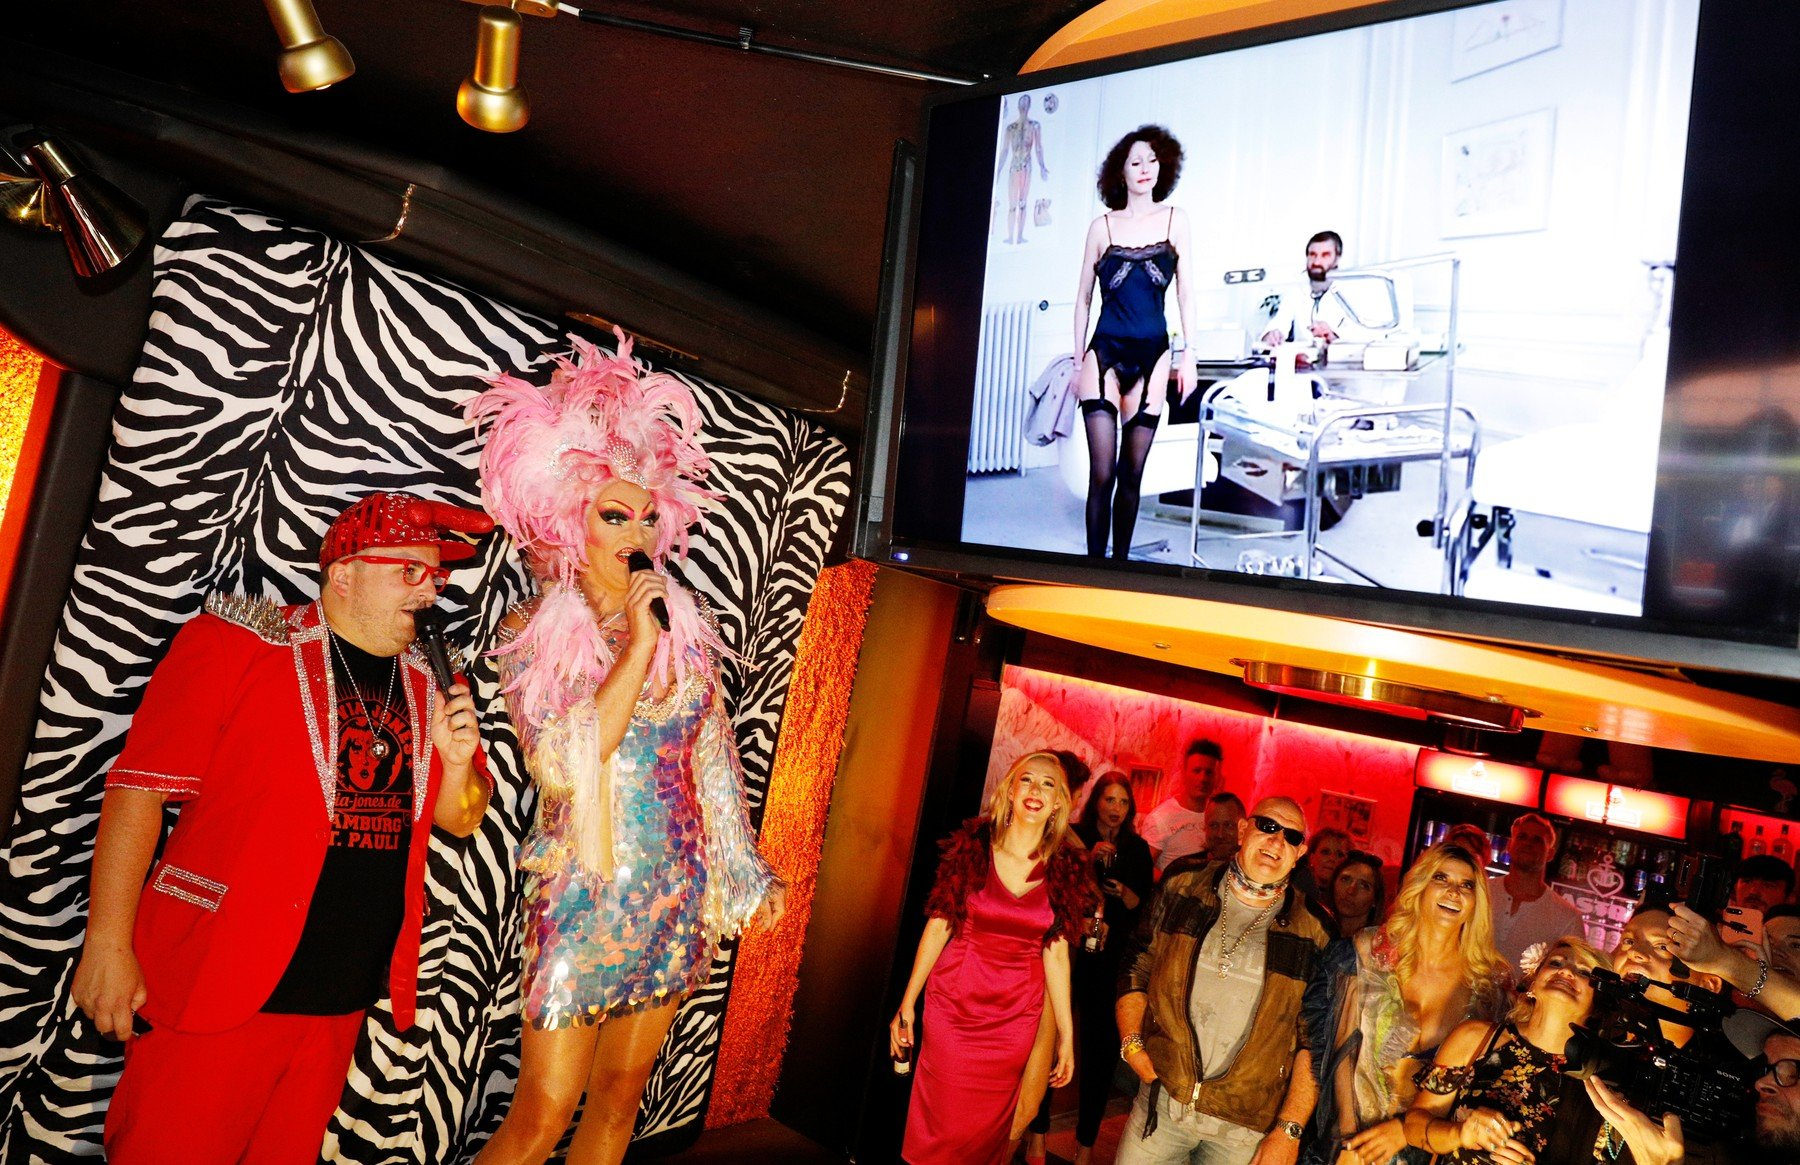 22 July 2019, Hamburg: Olivia Jones (2nd from left), Dragqueen, and Rex Dildo set a movie to music on the day of the opening of Jones